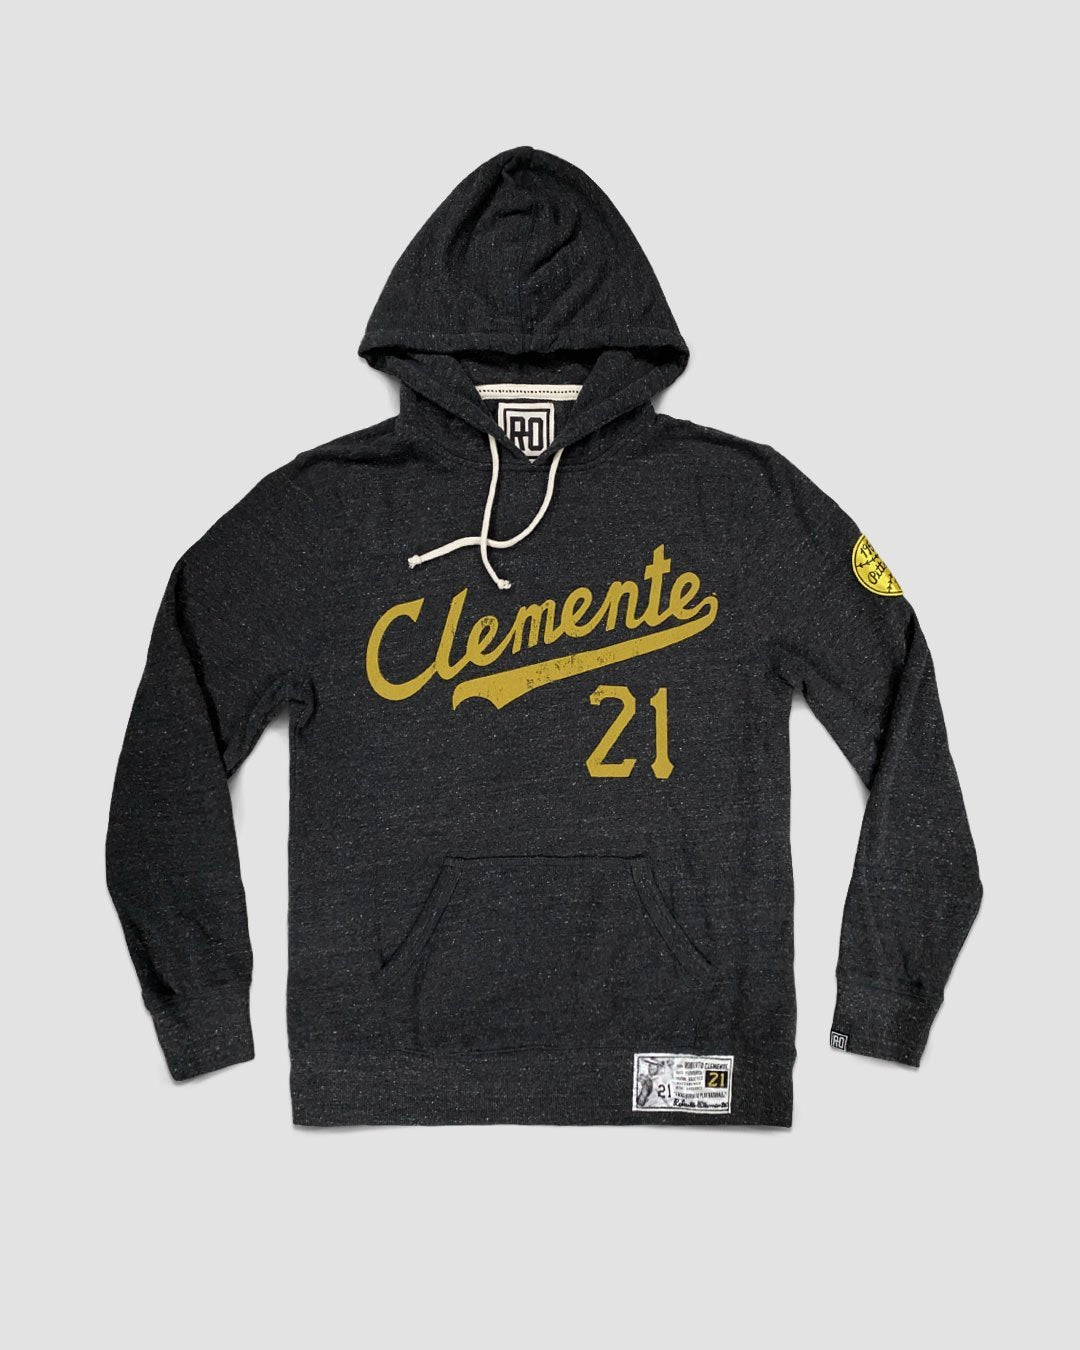 Roberto Clemente #21 Pullover Hoody - Roots of Inc dba Roots of Fight